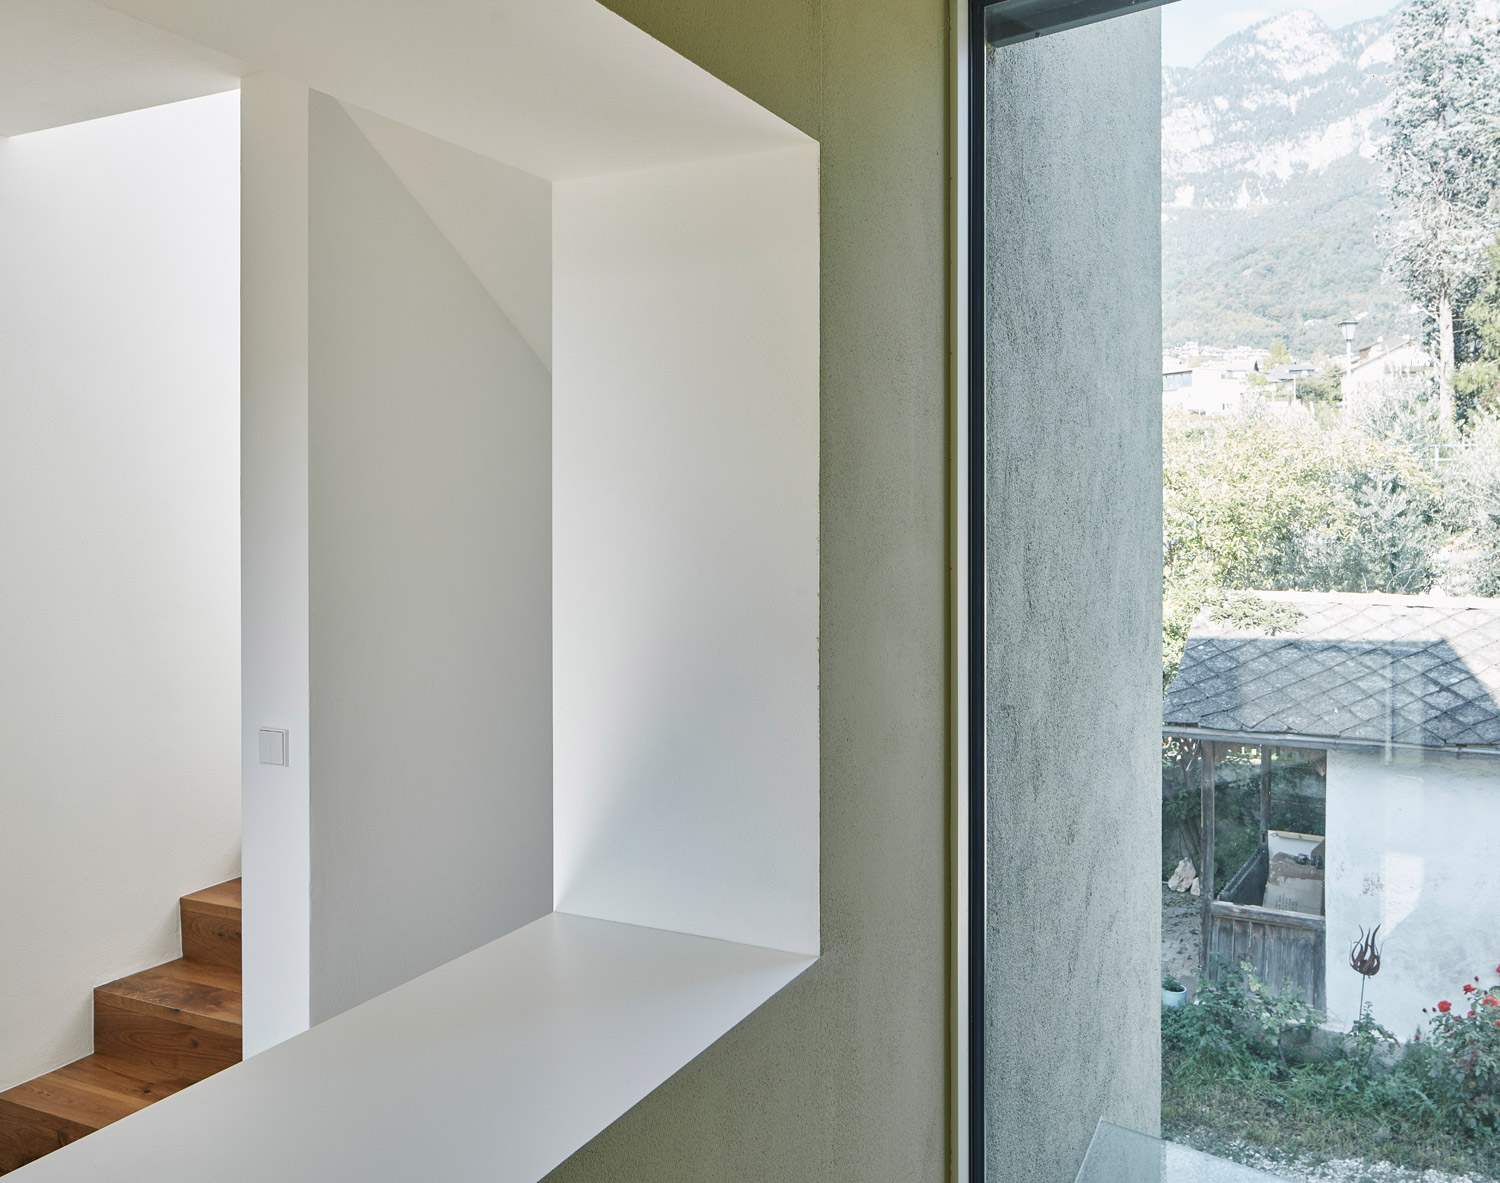 The pistachio tone of the facades continues into the inside David Schreyer